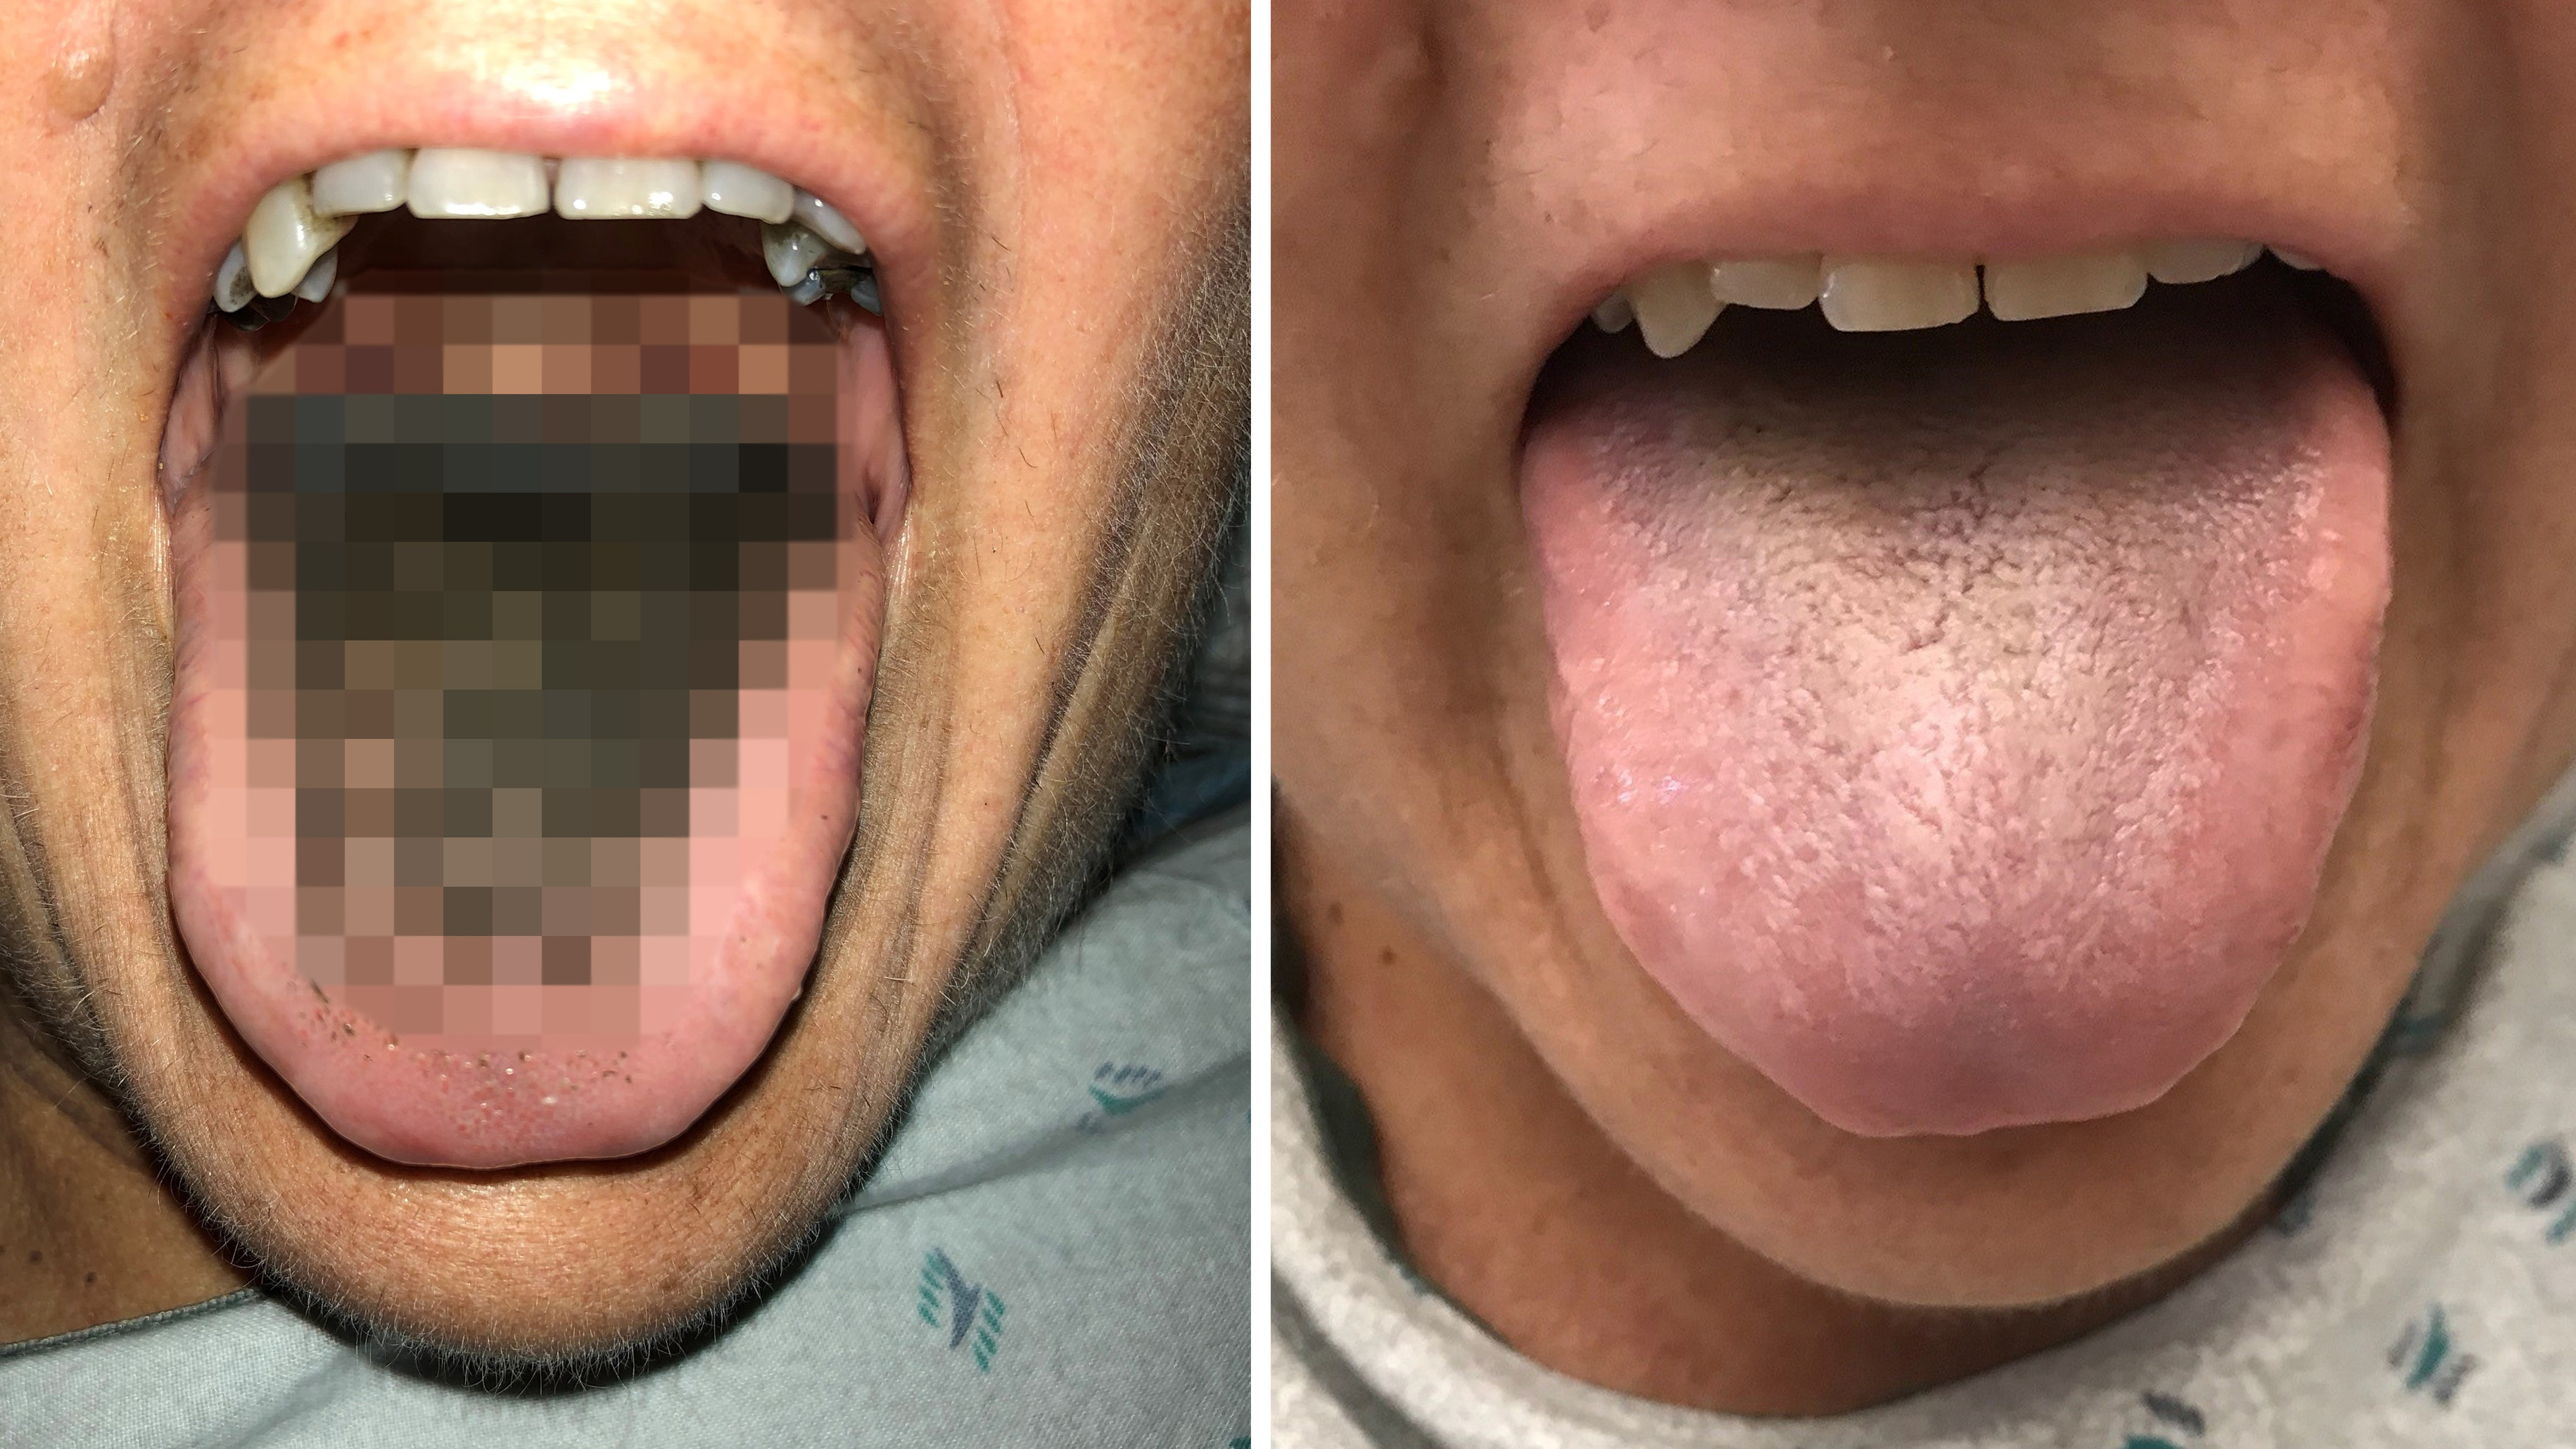 Woman suffers from 'black hairy tongue' after vehicle accident